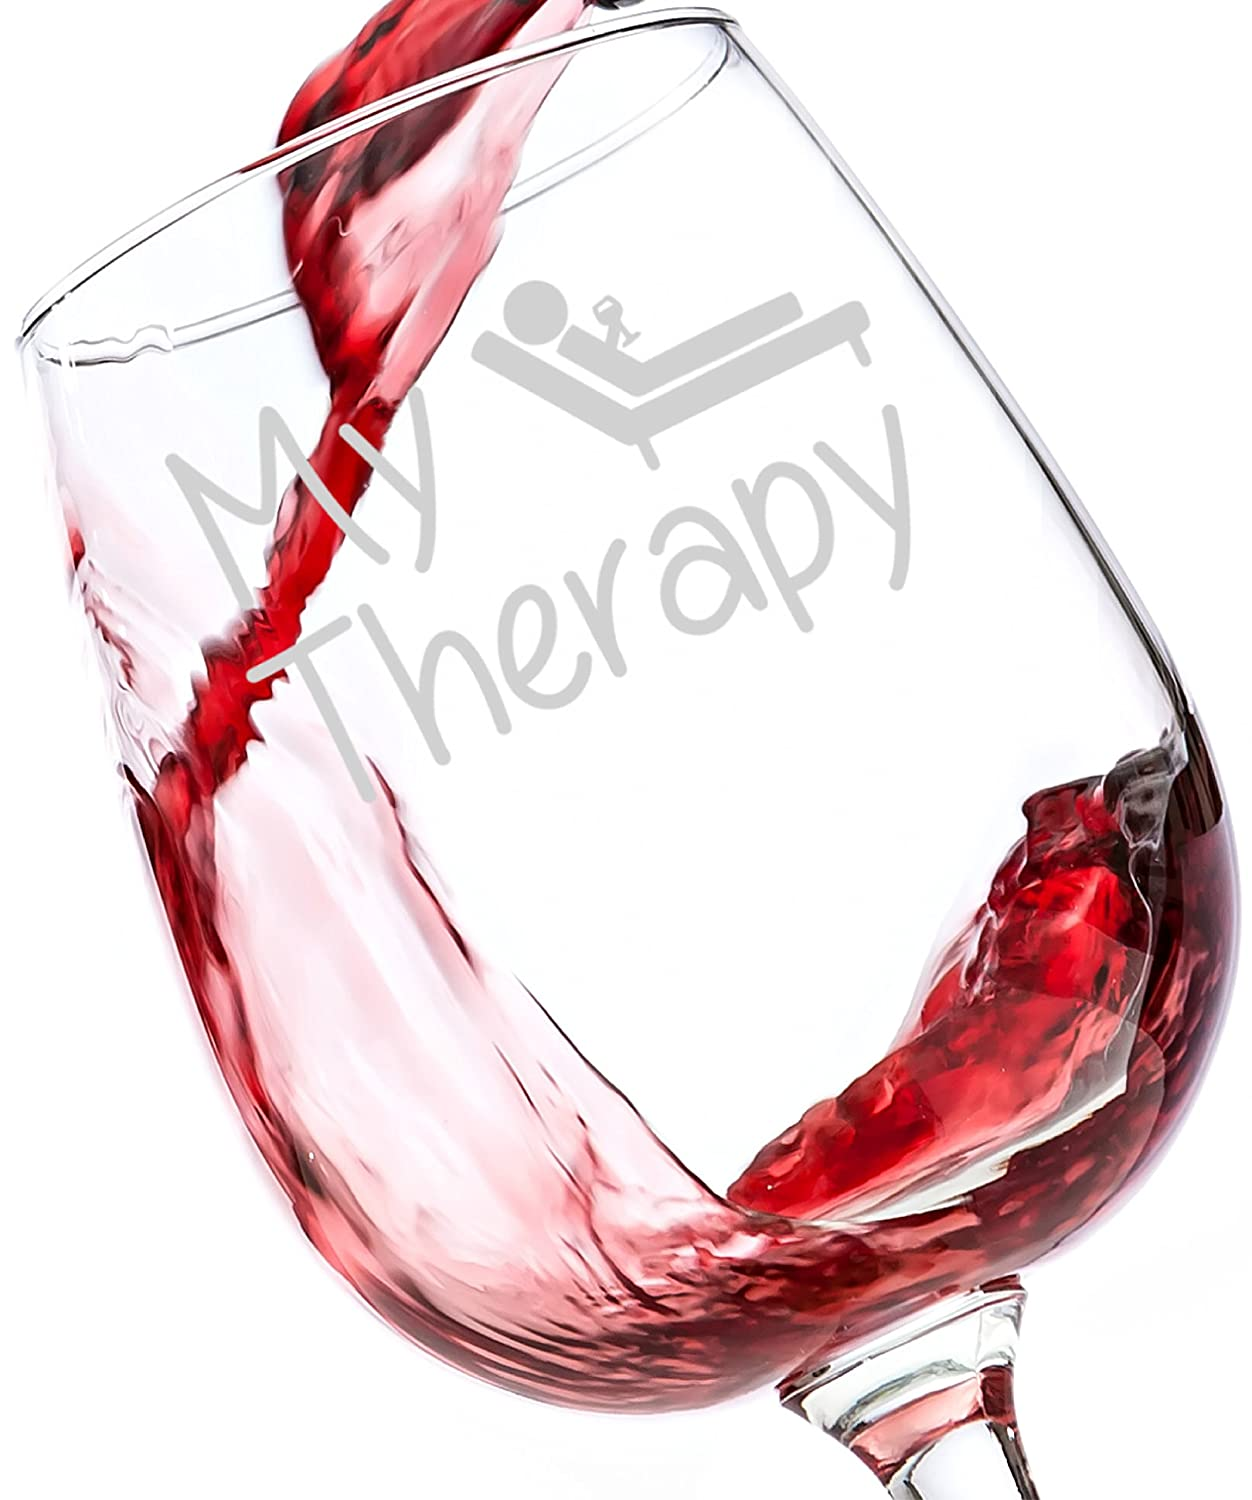 Funny wine glasses are fabulous Mother's Day gifts for any woman!